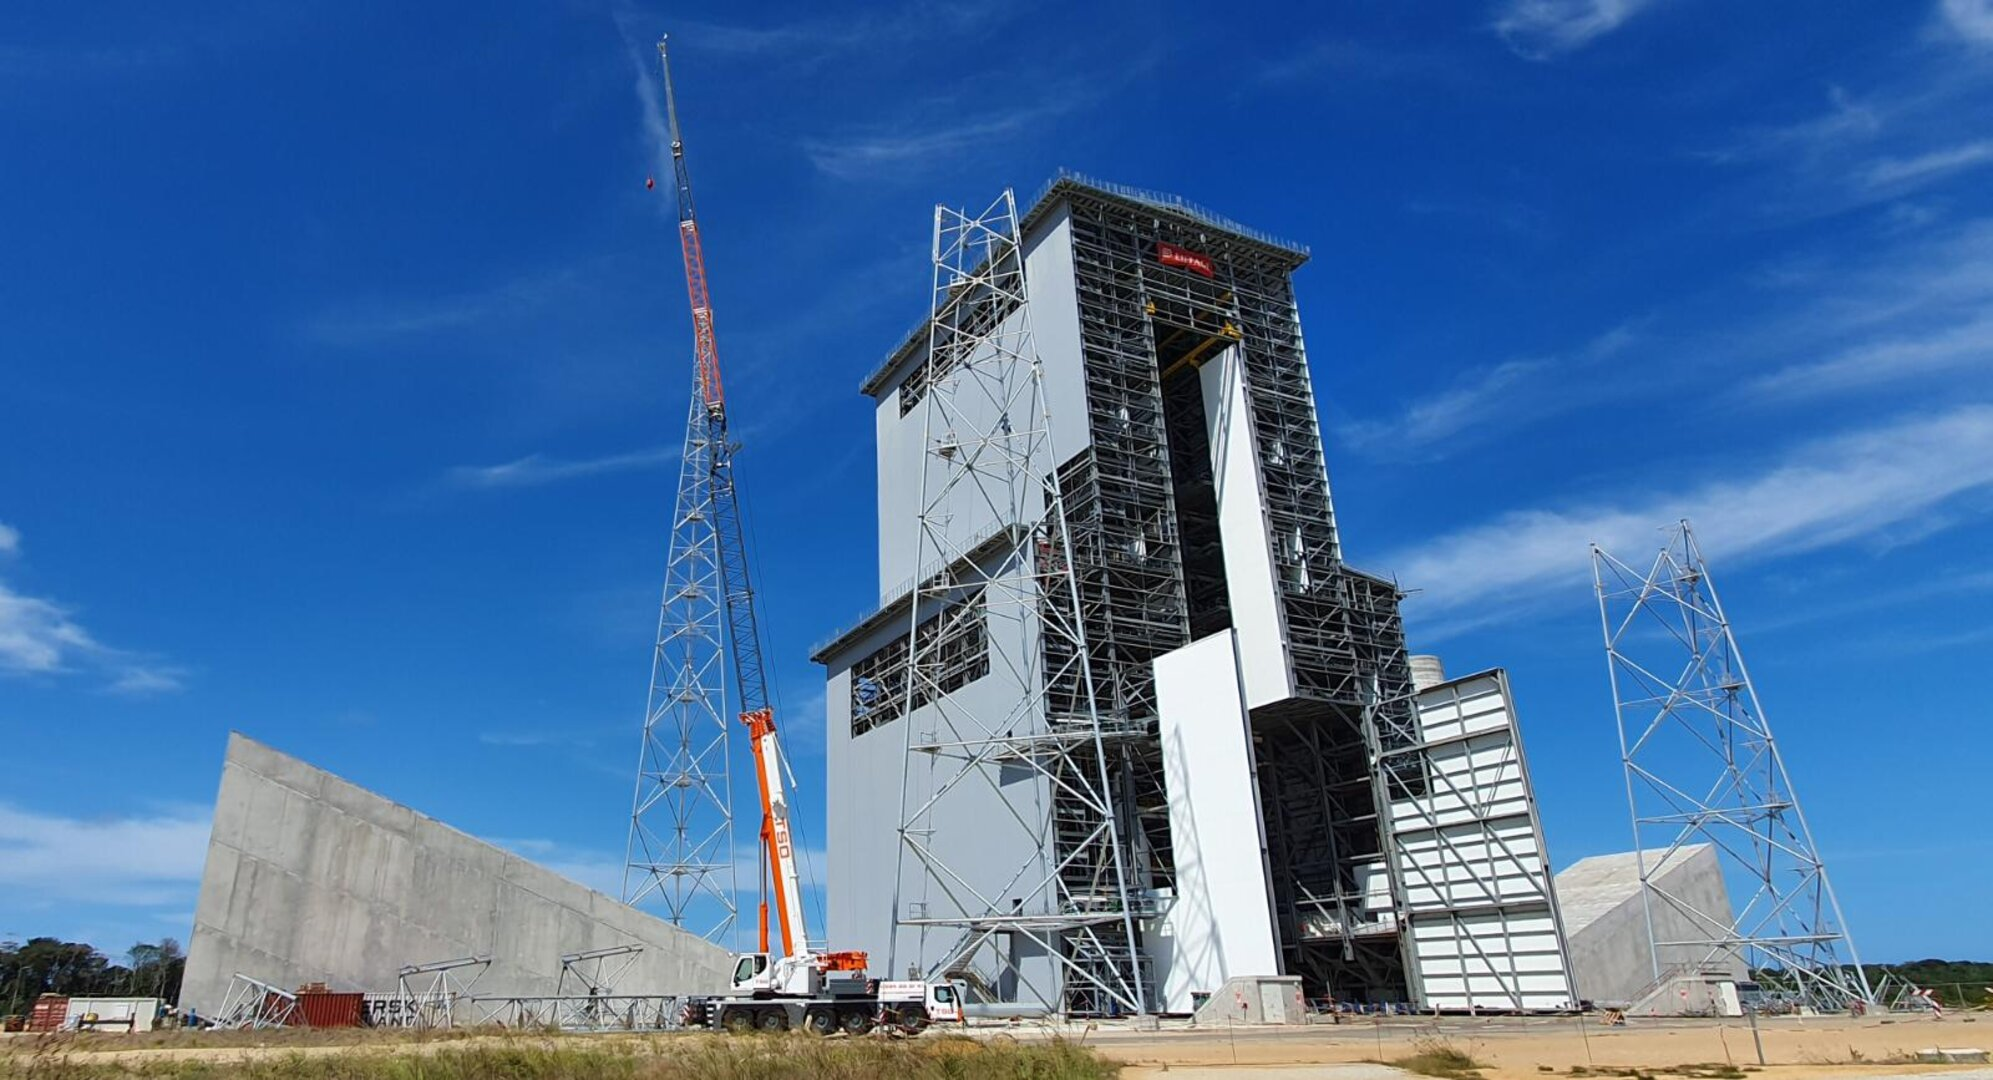 Ariane 6 mobile gantry over the launch pad